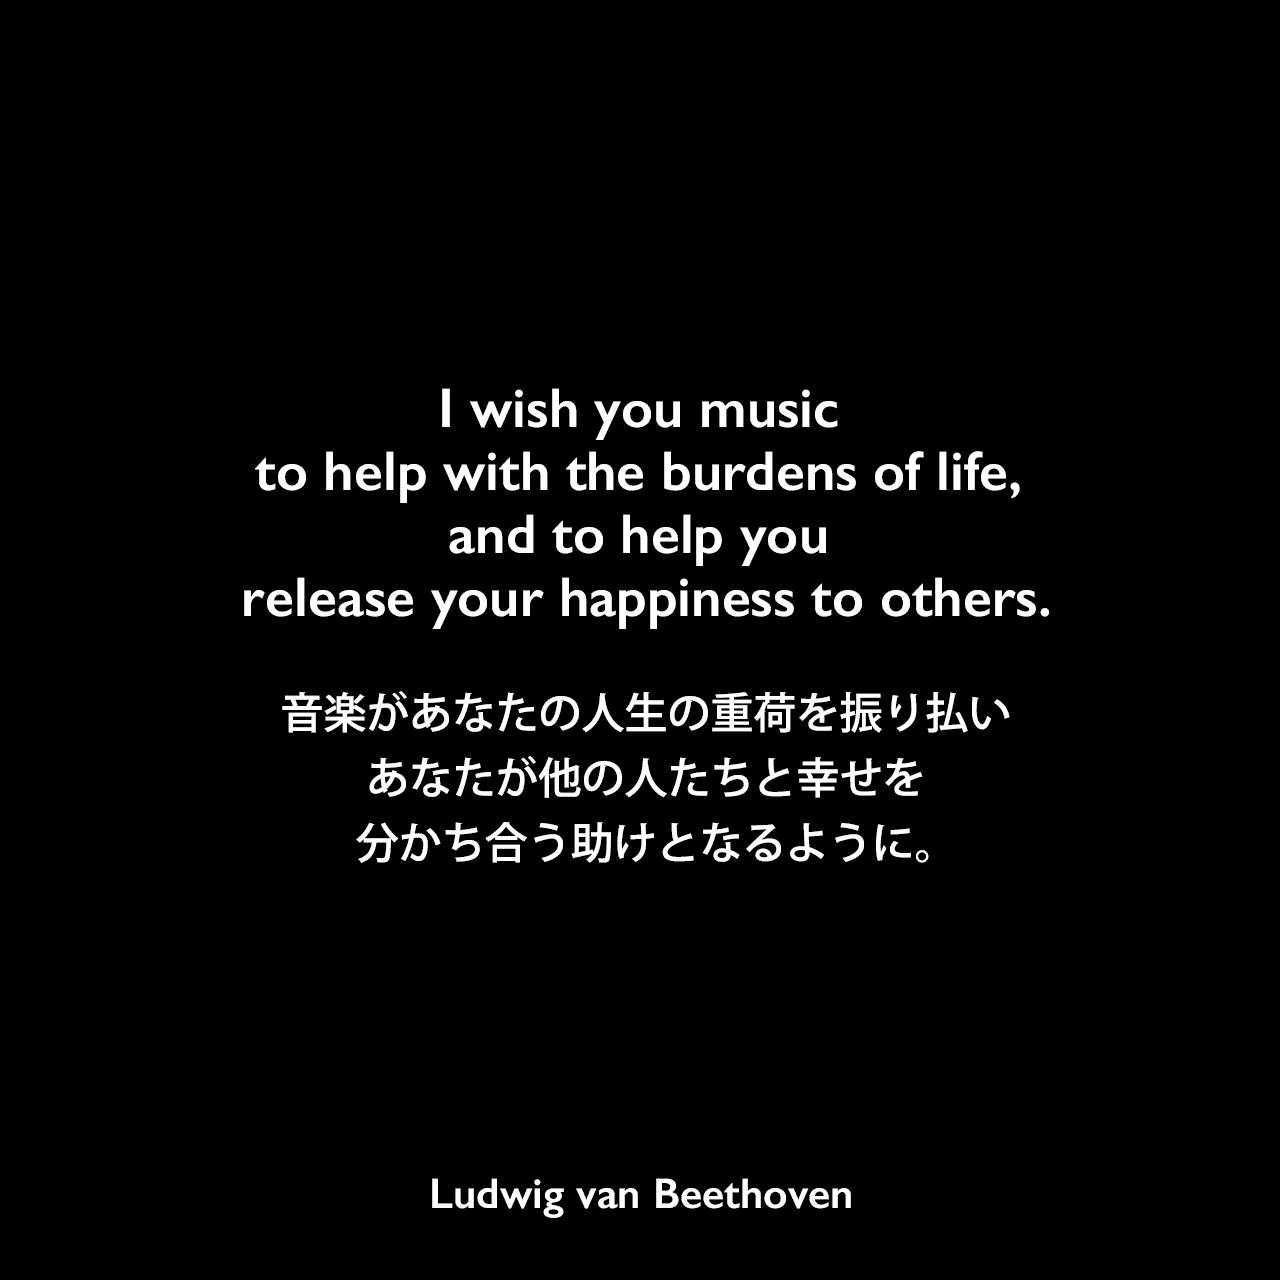 I wish you music to help with the burdens of life, and to help you release your happiness to others.音楽があなたの人生の重荷を振り払い、あなたが他の人たちと幸せを分かち合う助けとなるように。Ludwig van Beethoven